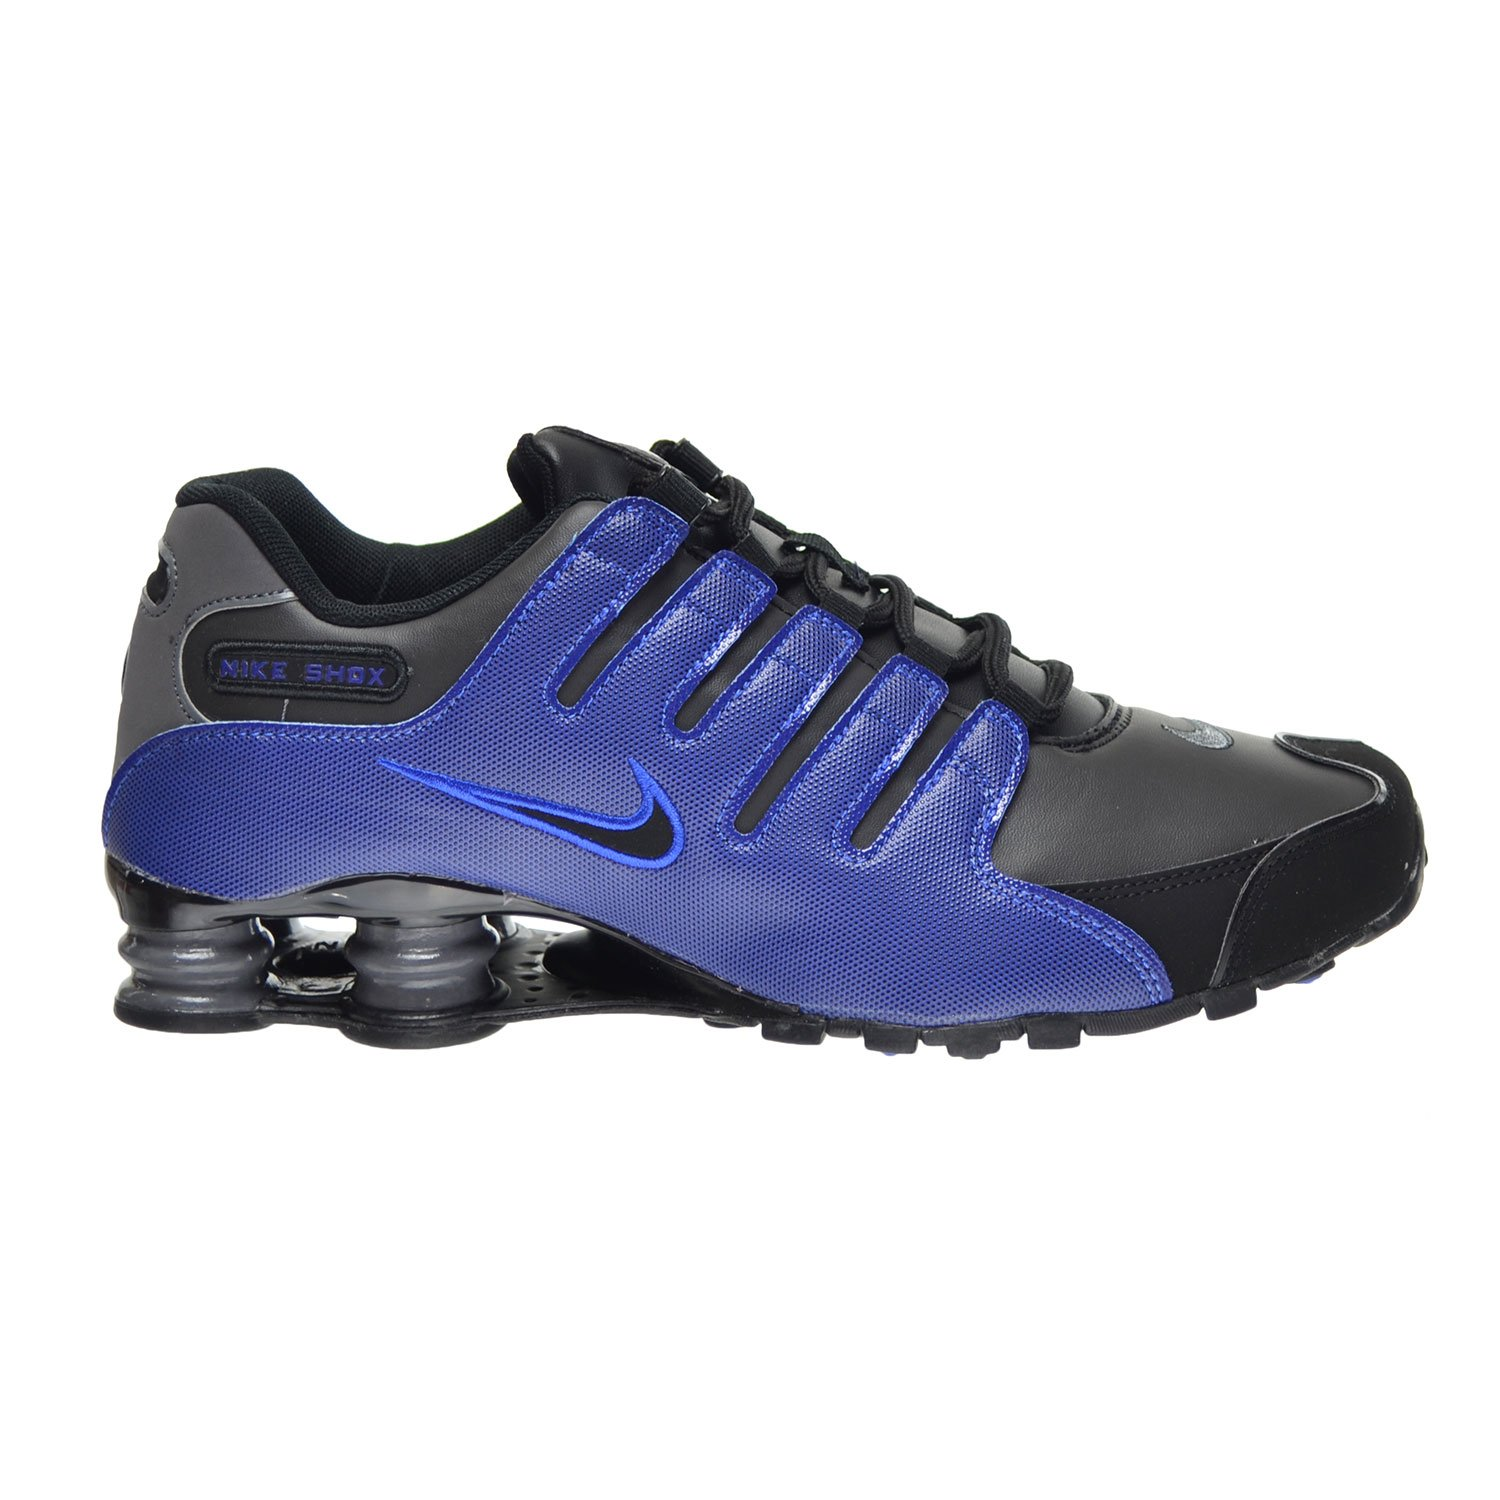 separation shoes c770e c0c6e Amazon.com   Nike Shox NZ Men s Shoes Black Racer Blue Dark Grey 378341-041  (10.5 D(M) US)   Road Running